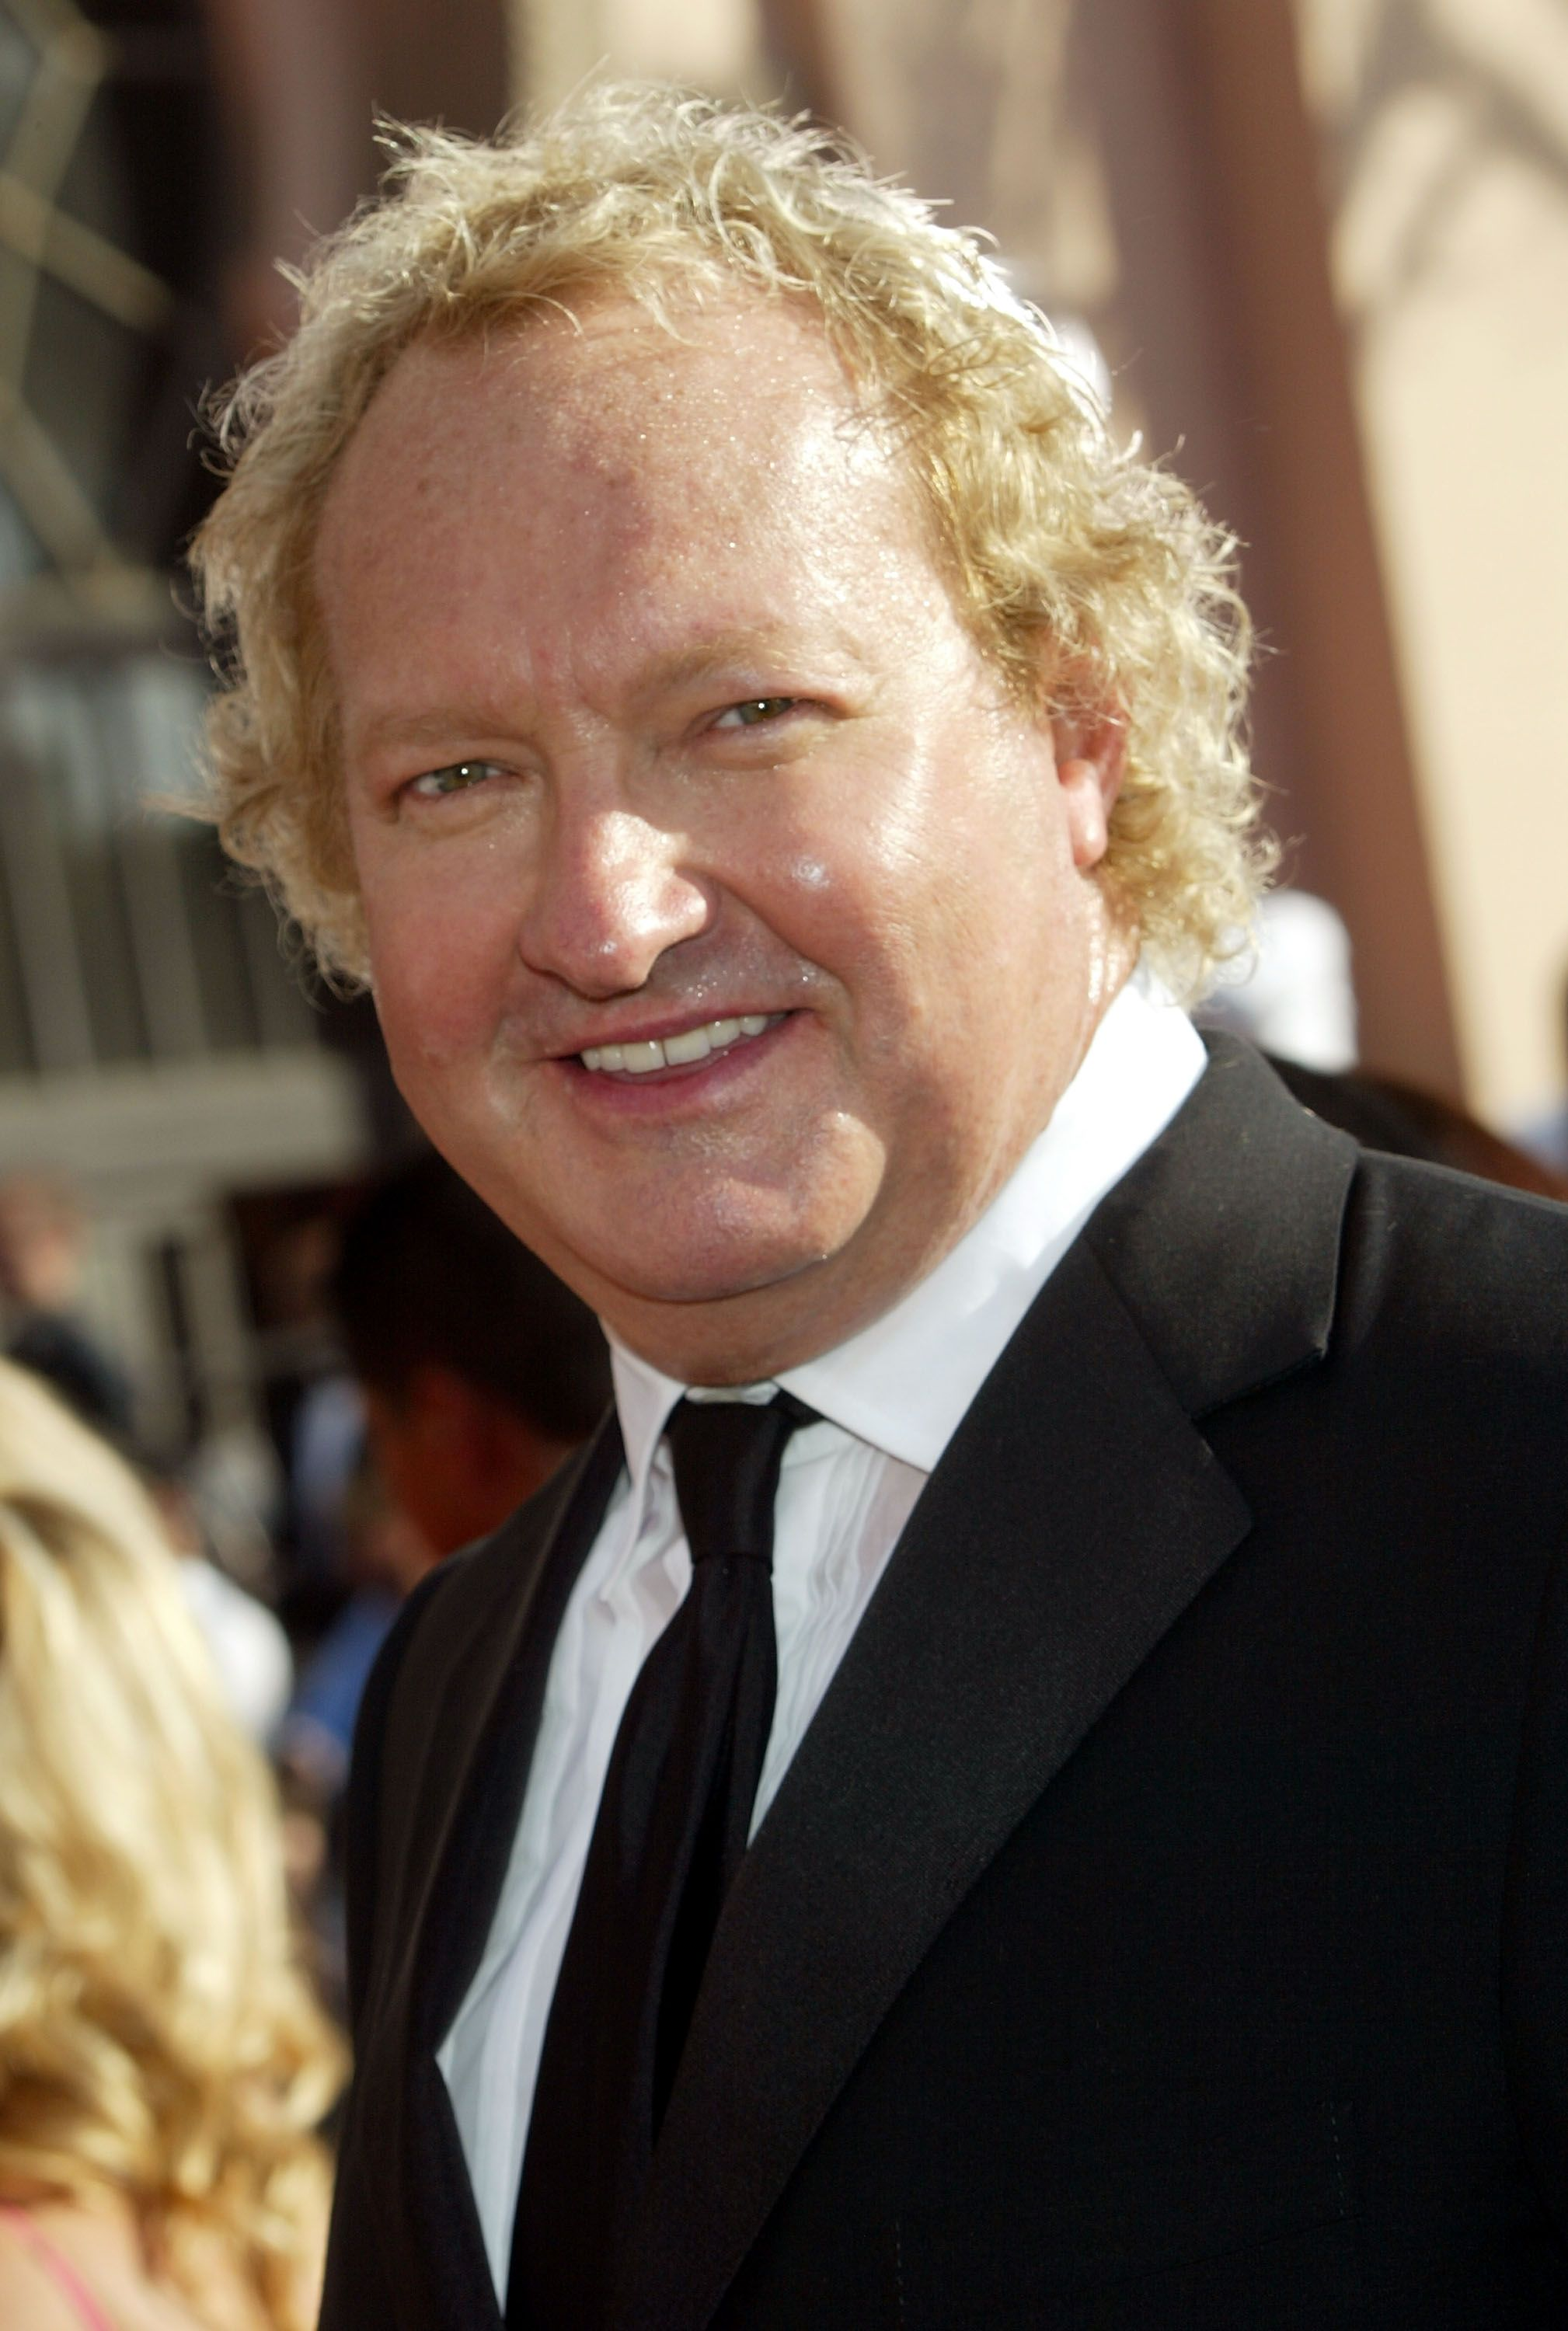 Randy Quaid at the 57th Annual Emmy Awards in 2005 in Los Angeles, California | Source: Getty Images